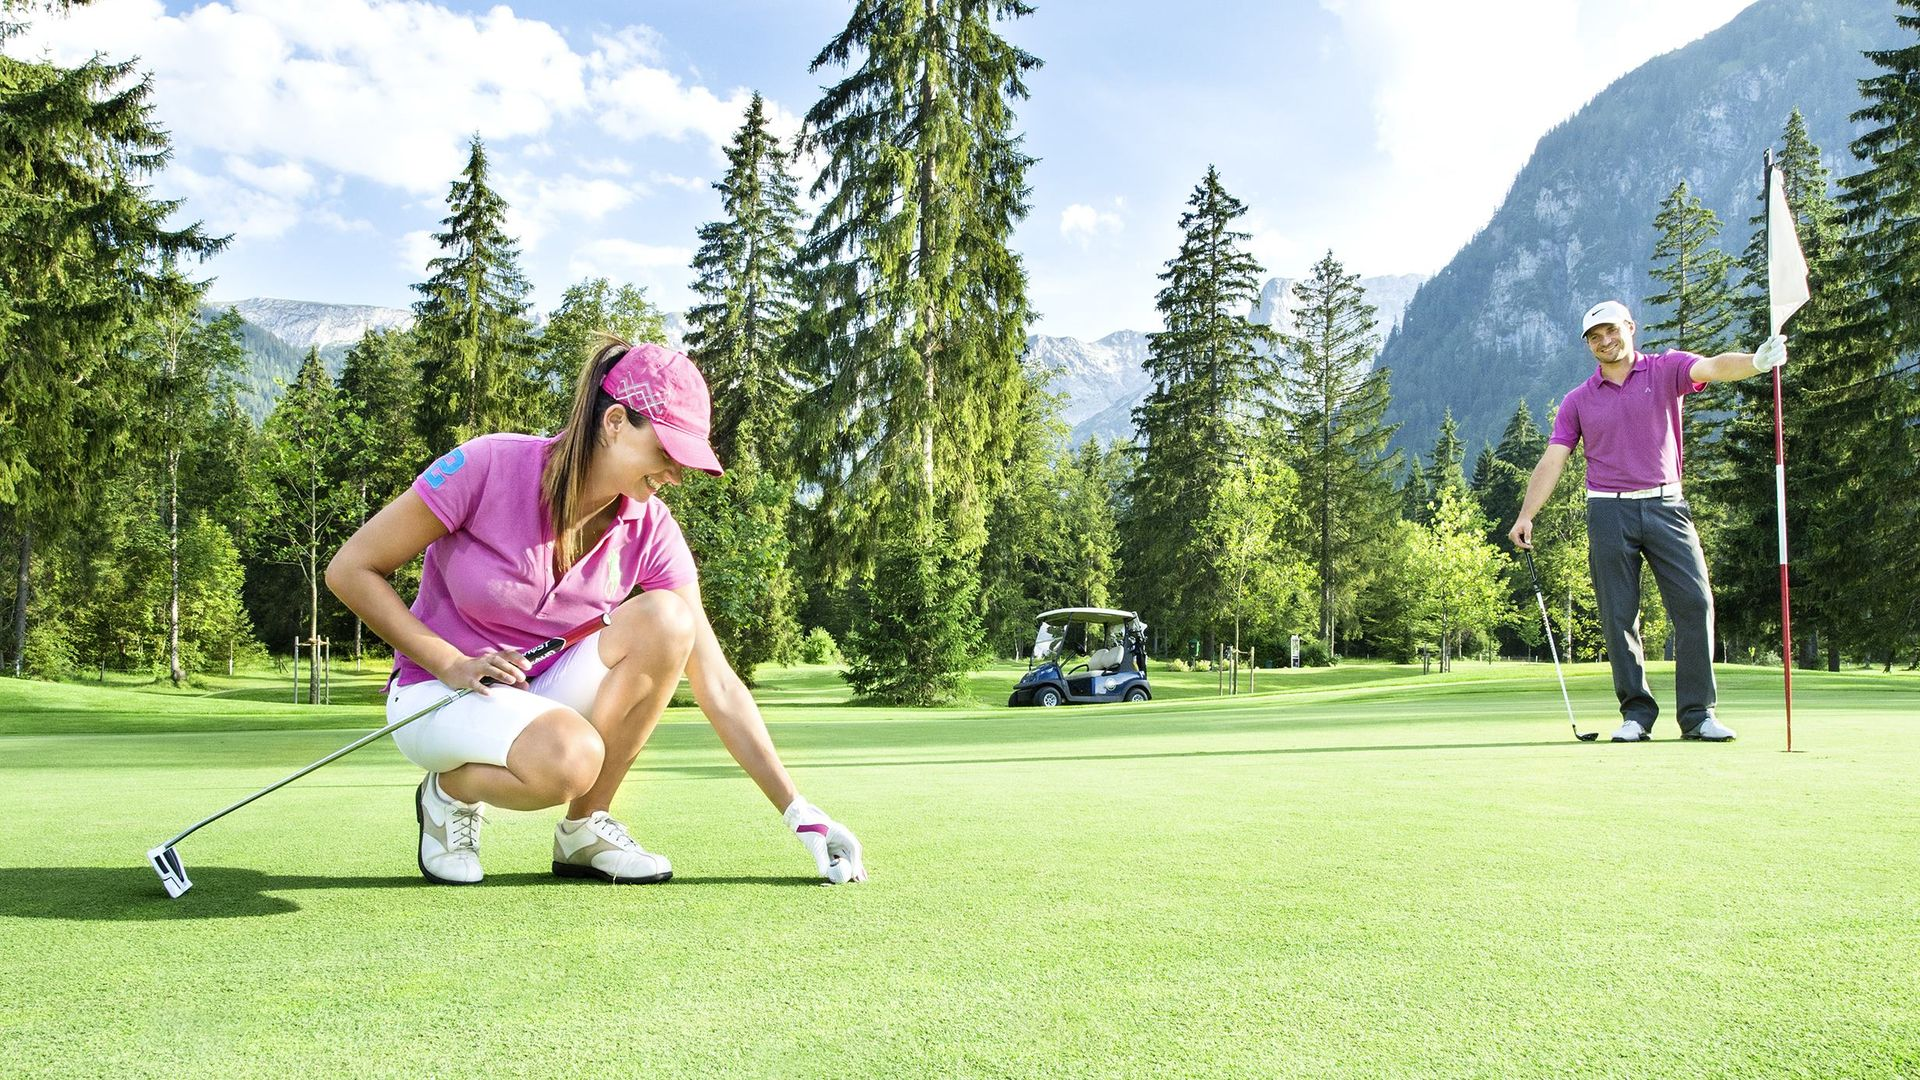 Couple golfing on an adventure holiday in Austria during summer